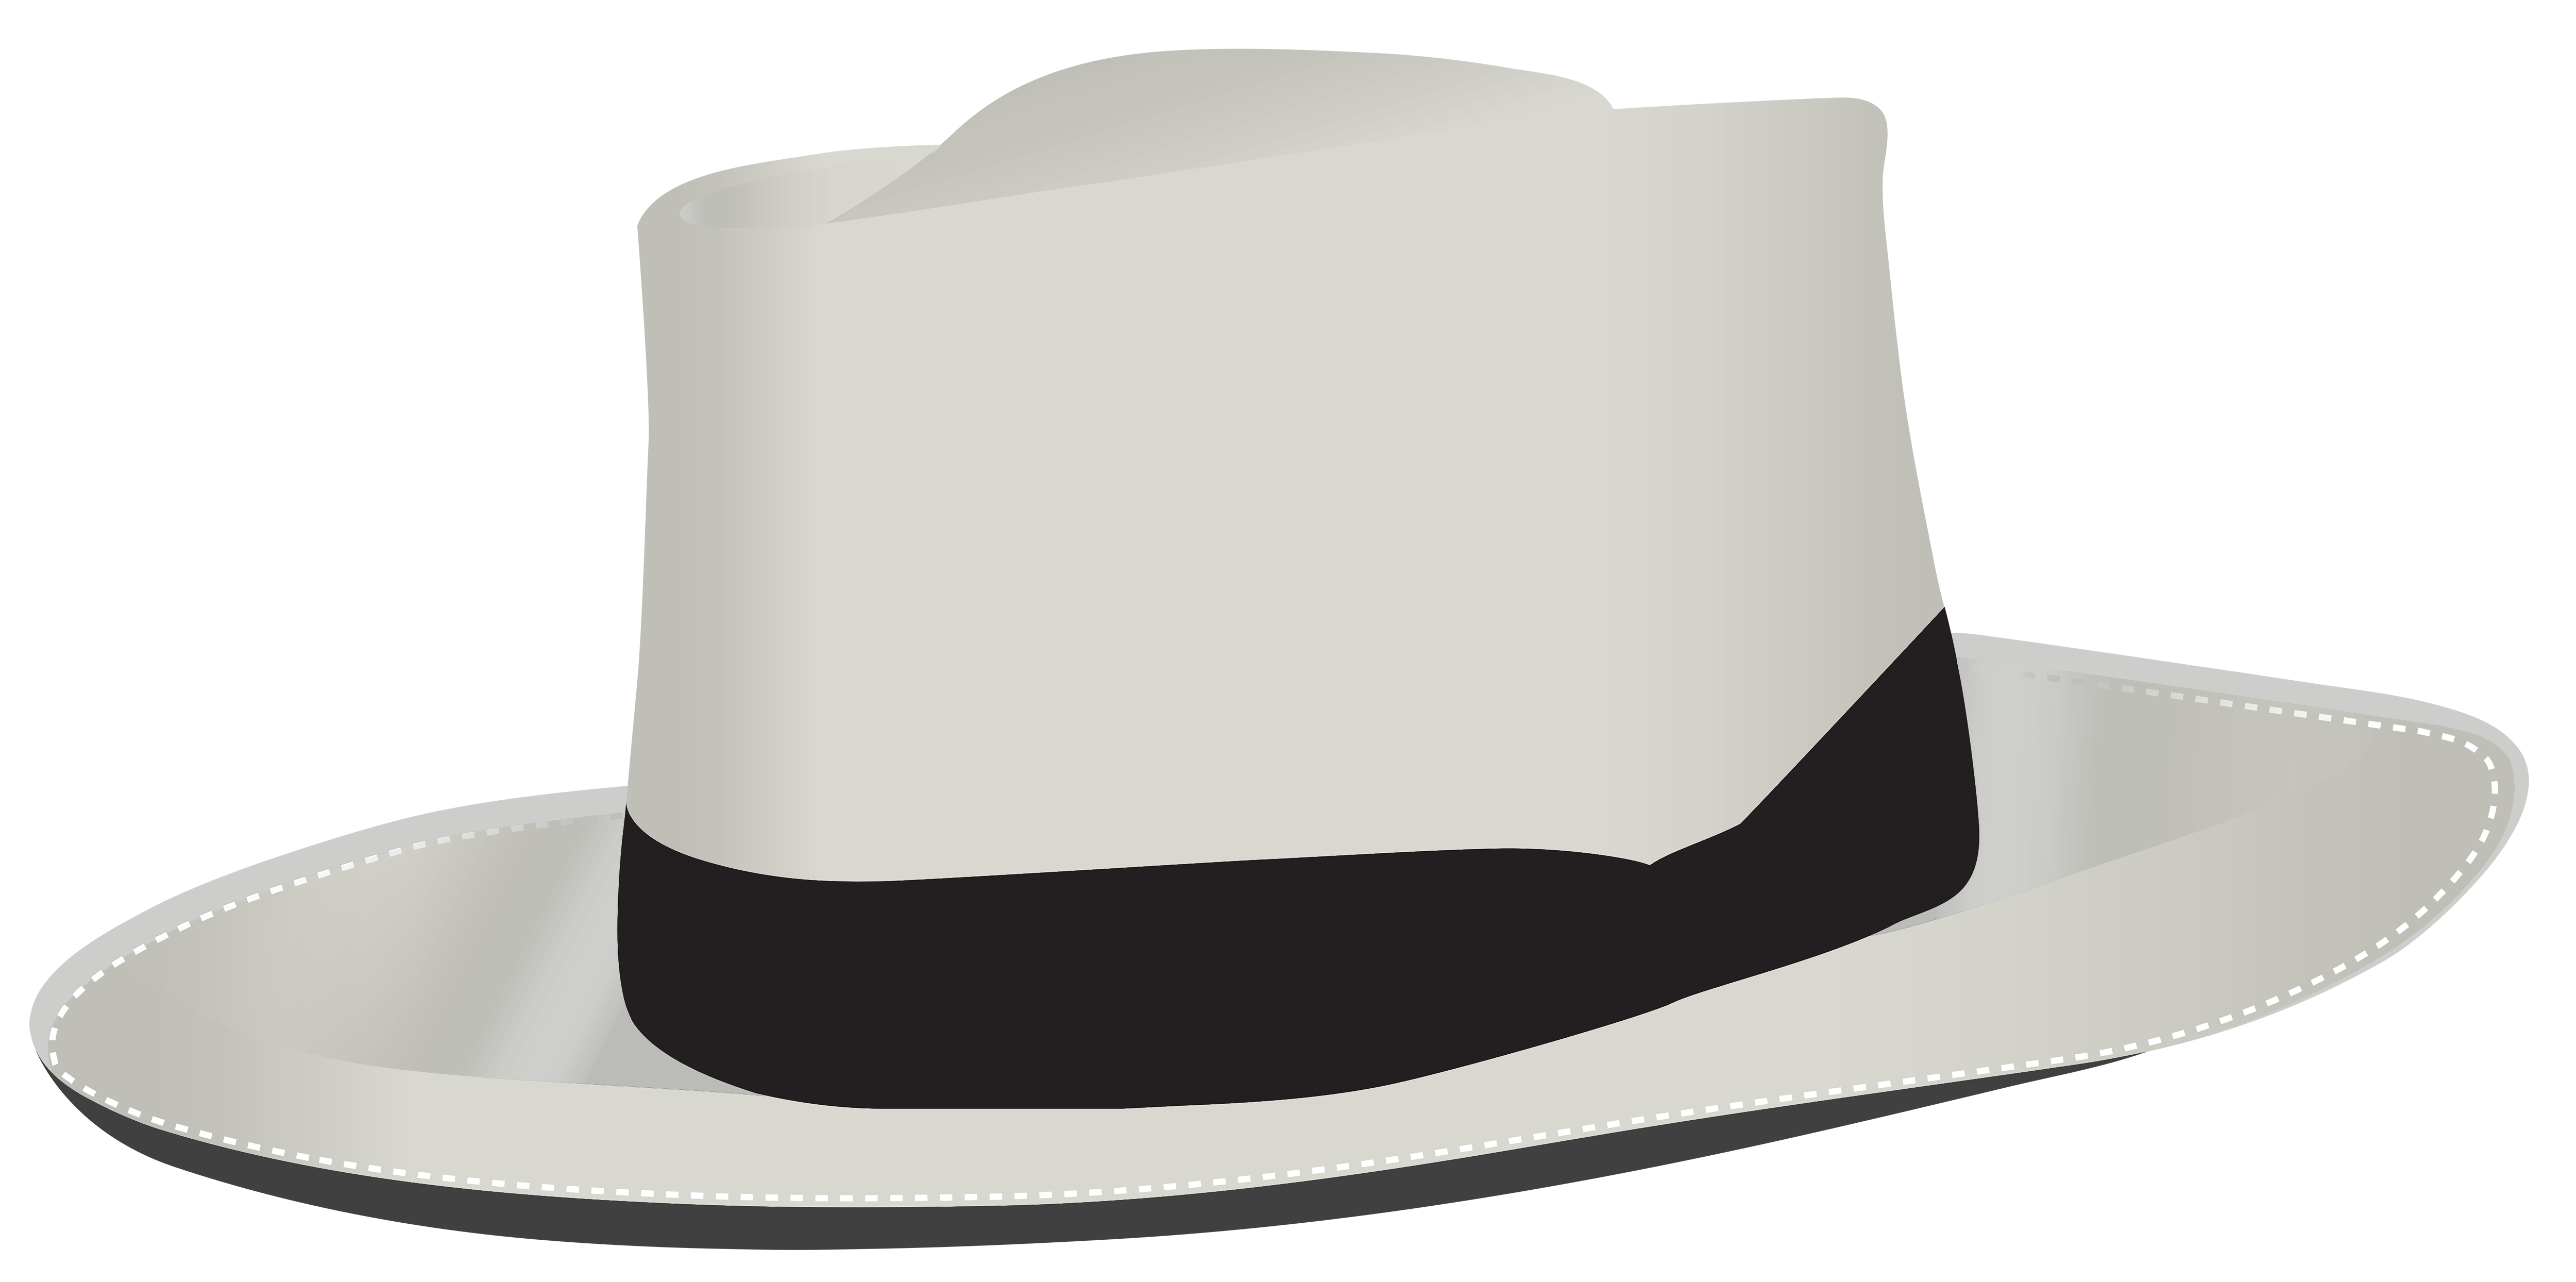 Png transparent images male. Fedora clipart swag hat